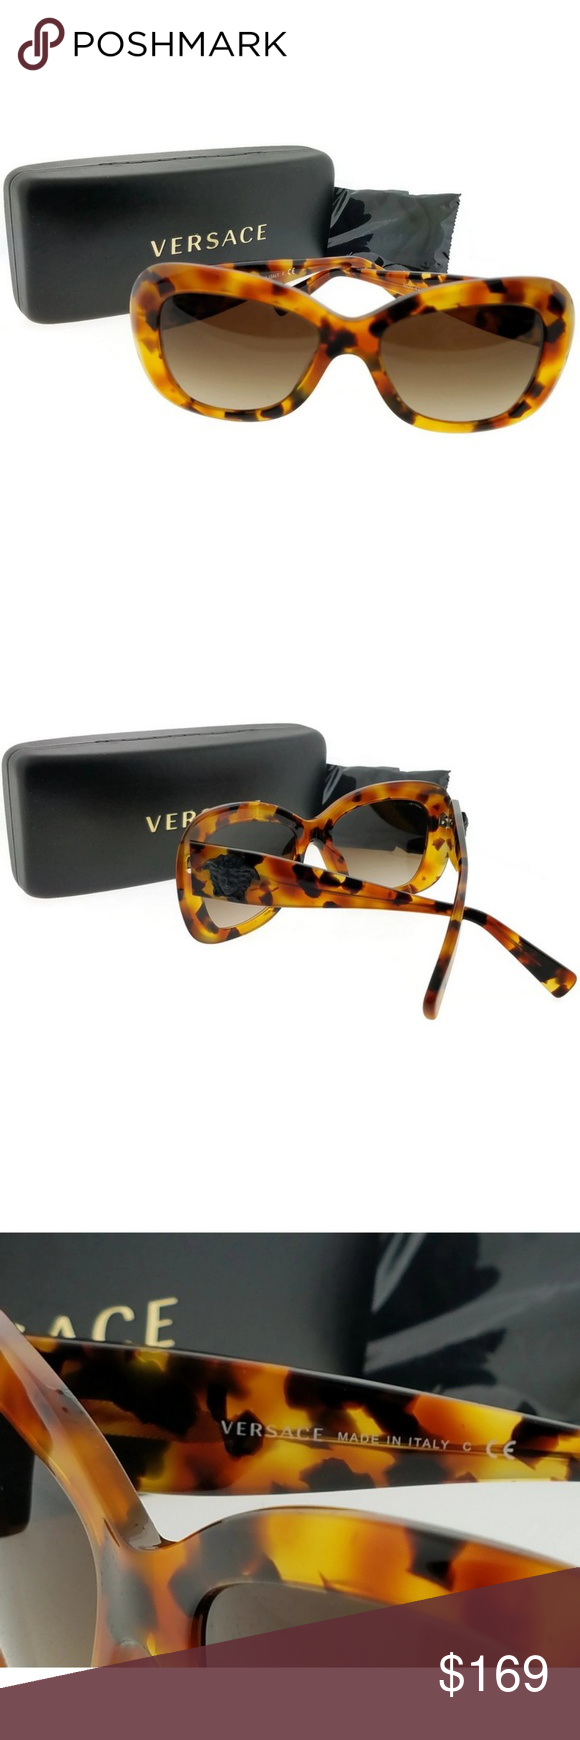 VE4317-260-13-54 Women's Tortoise Frame Sunglasses New gorgeous authentic Versace VE4317-260-13-54 tortoise frame/ brown lens 54mm sunglasses with stylish look new in box. Versace is a fashion and lifestyle brand for contemporary men and women who love glamorous luxury and distinctive personal style. Versace glasses collection's refined and innovative design is a celebration of timeless exclusivity and fashion forward elegance. Versace Accessories Sunglasses